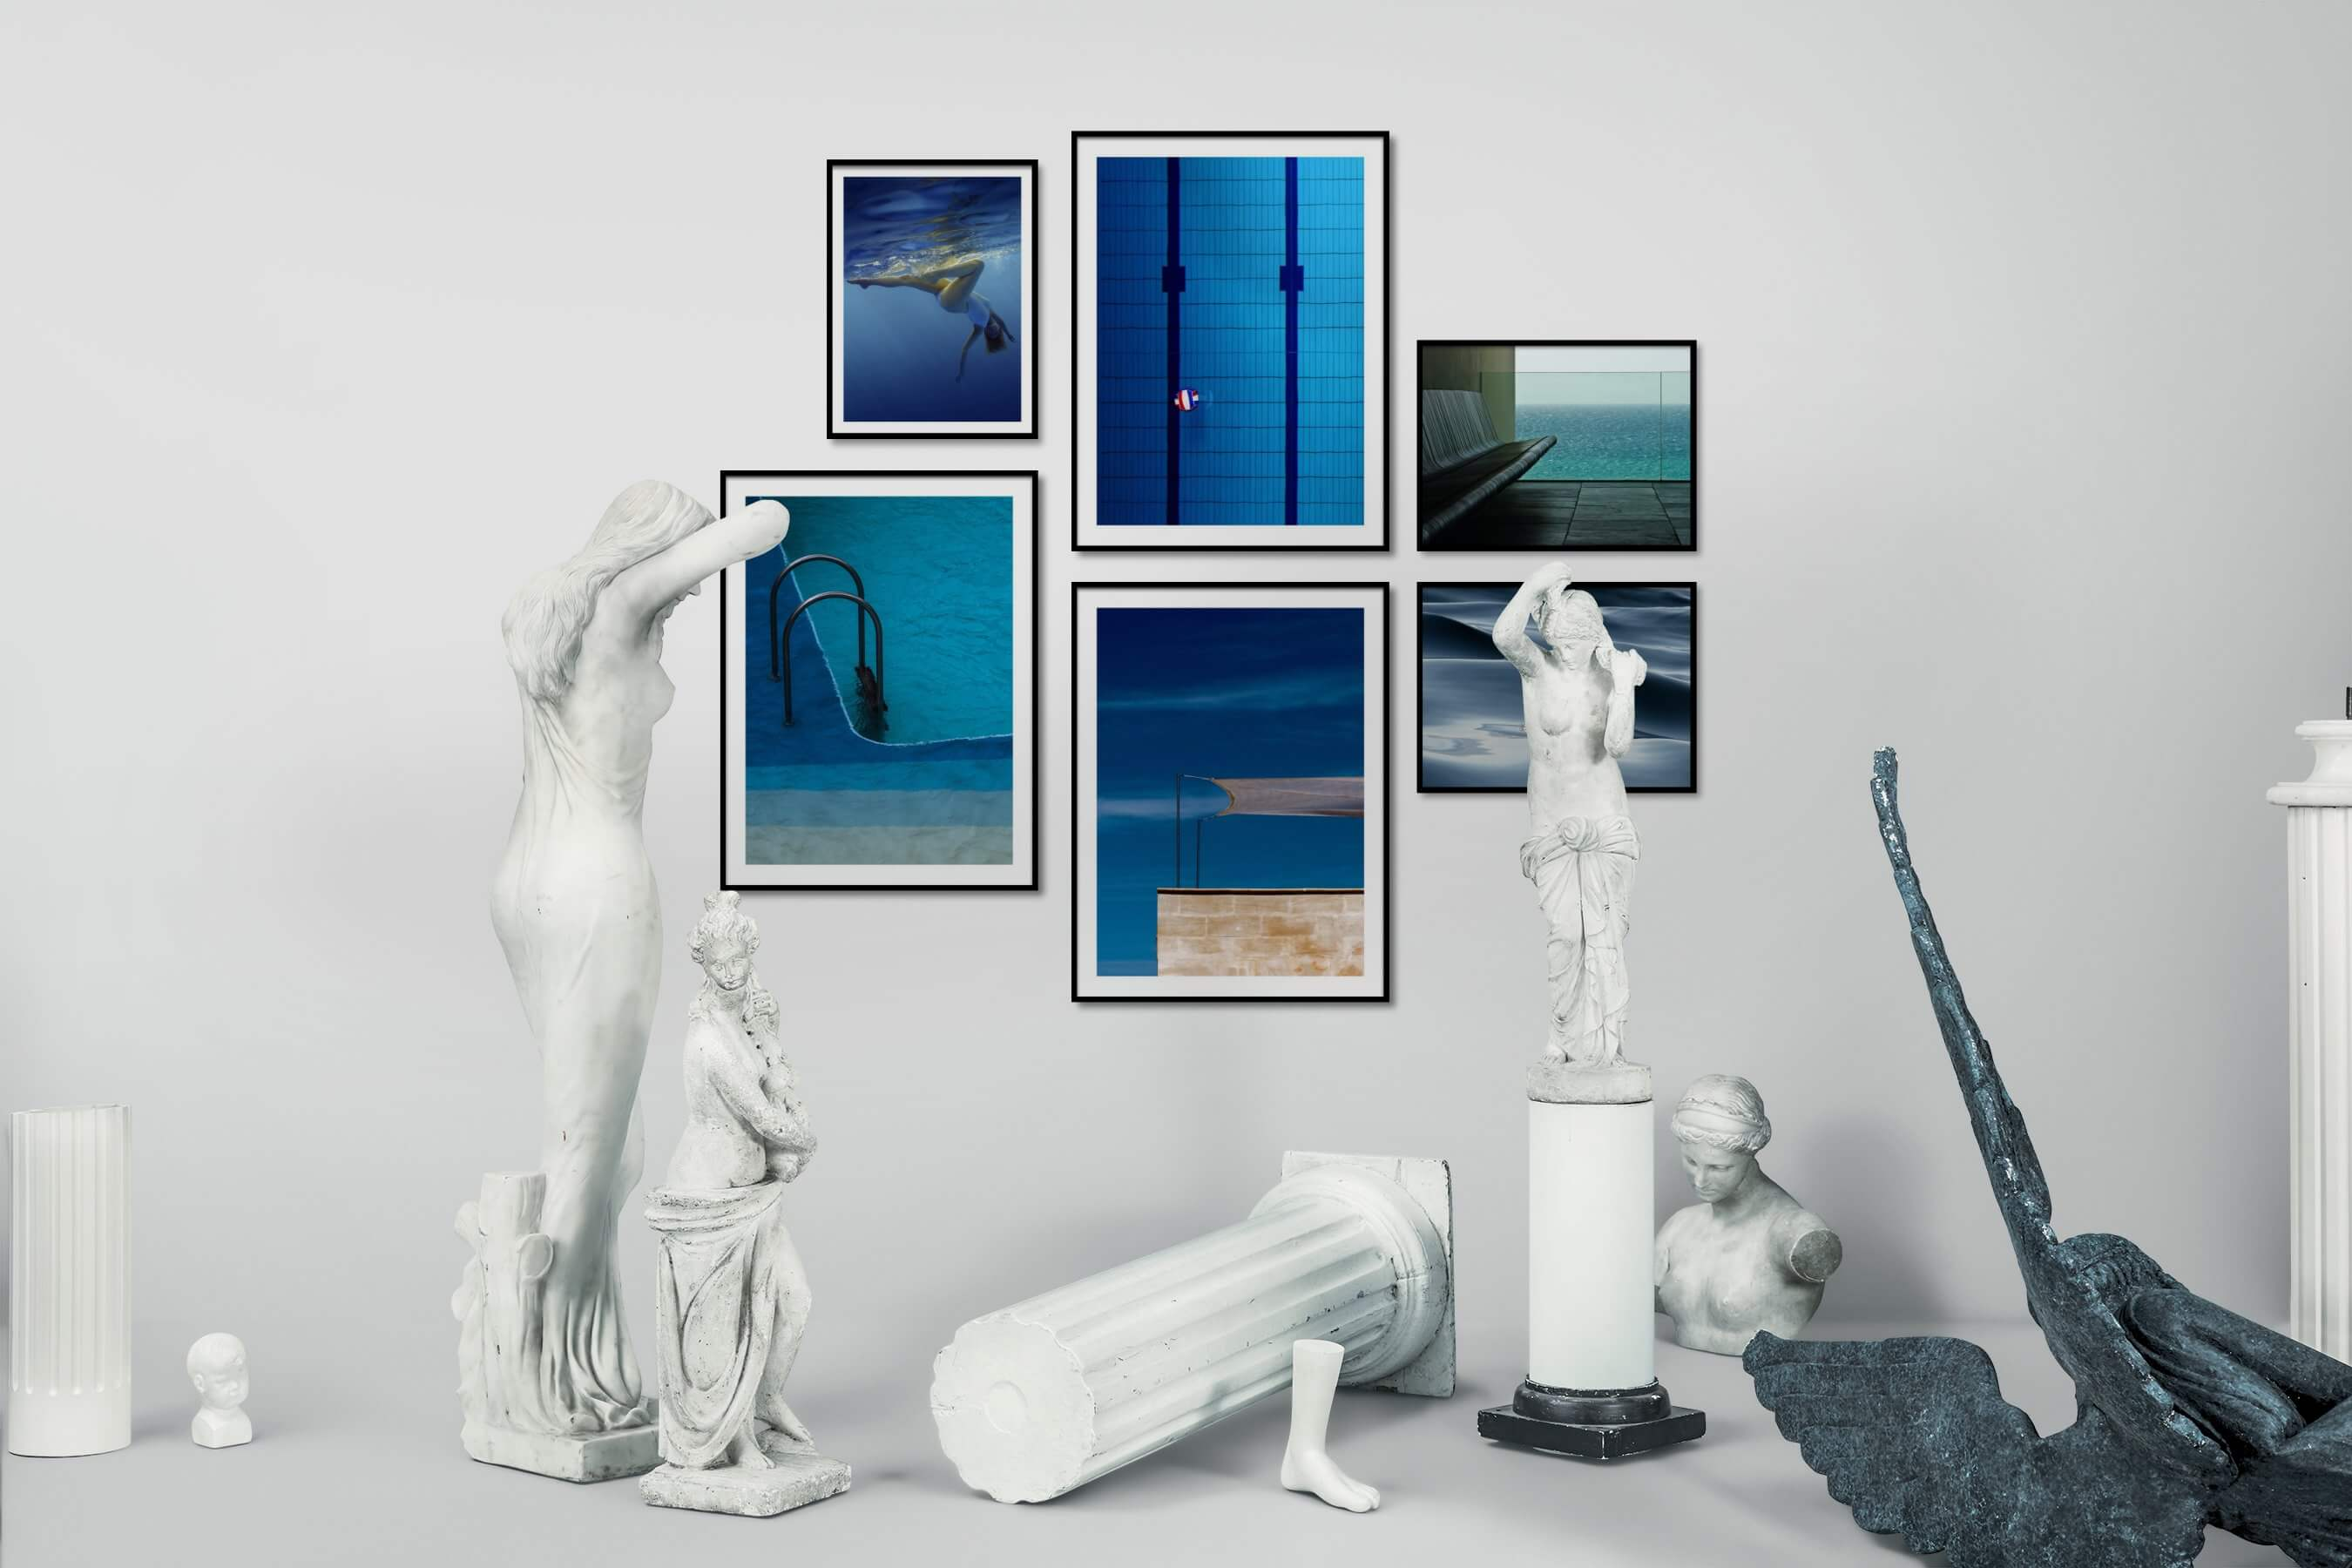 Gallery wall idea with six framed pictures arranged on a wall depicting Fashion & Beauty, Beach & Water, For the Minimalist, For the Moderate, and Mindfulness